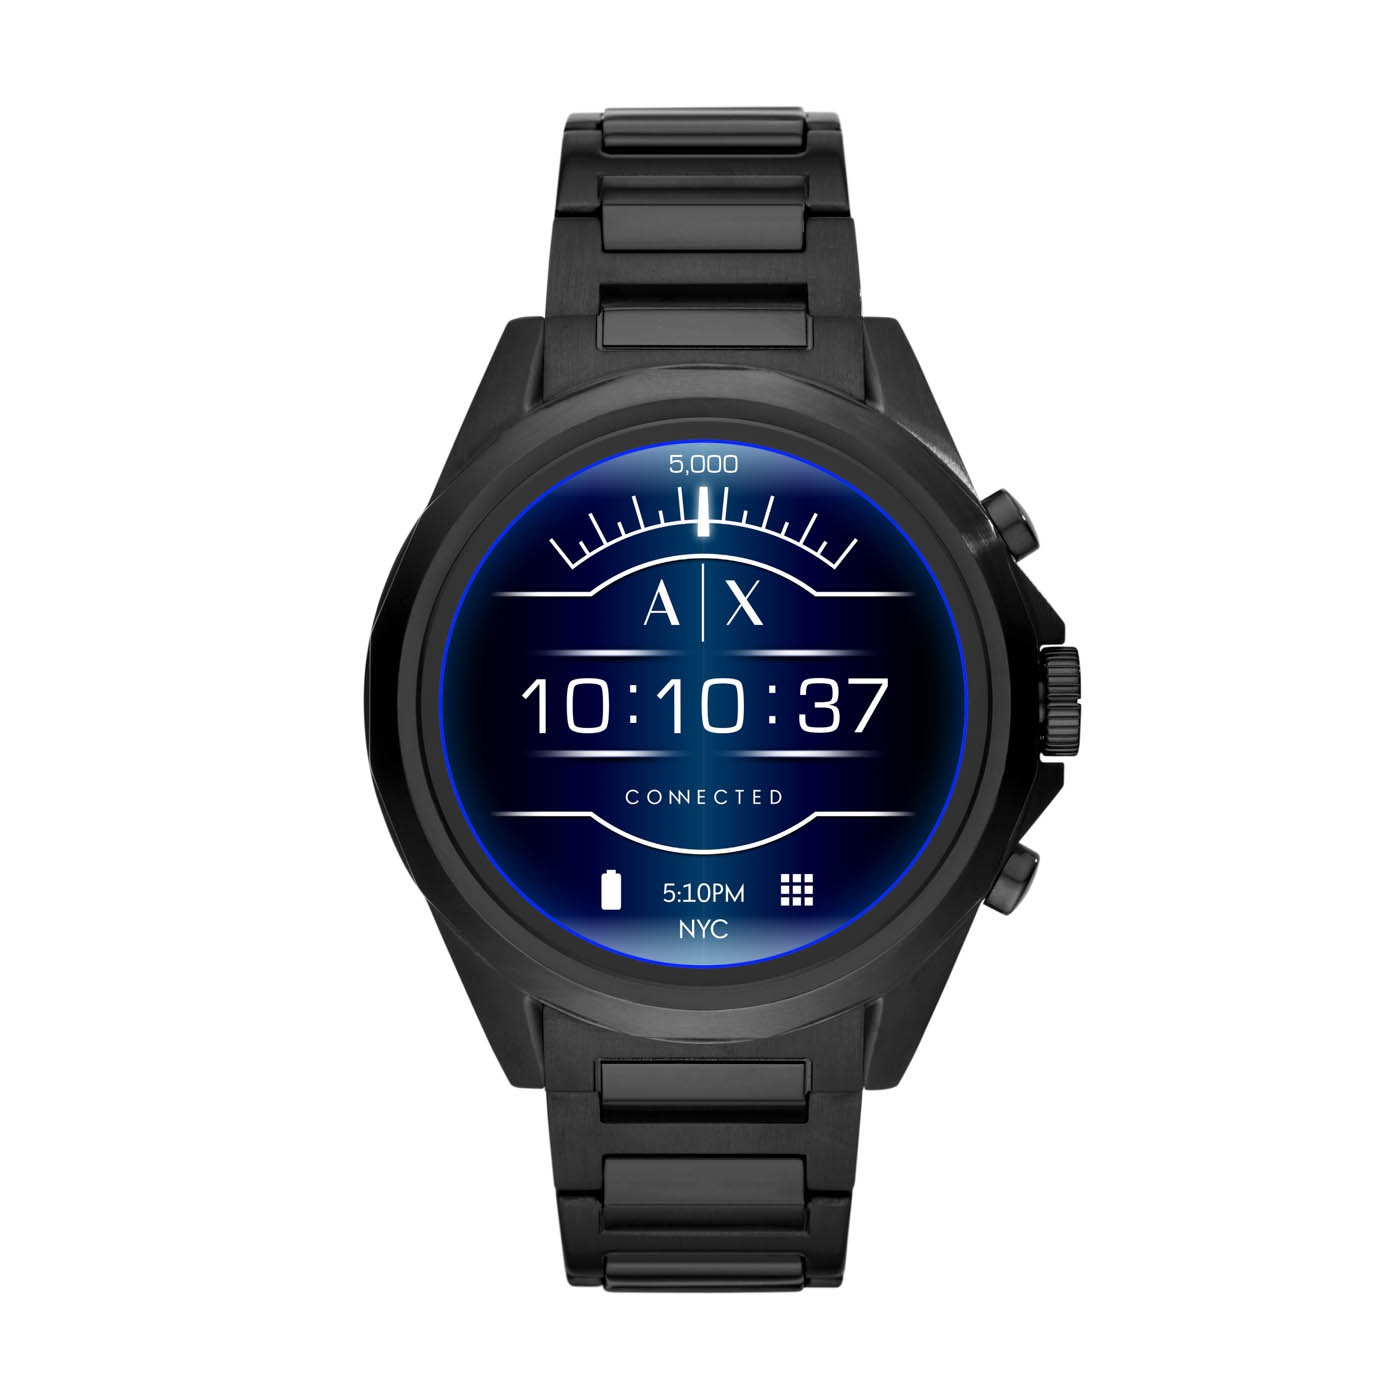 Immagine di Armani Exchange Connected Drexler Gen 4 Display Smartwatch AXT2002